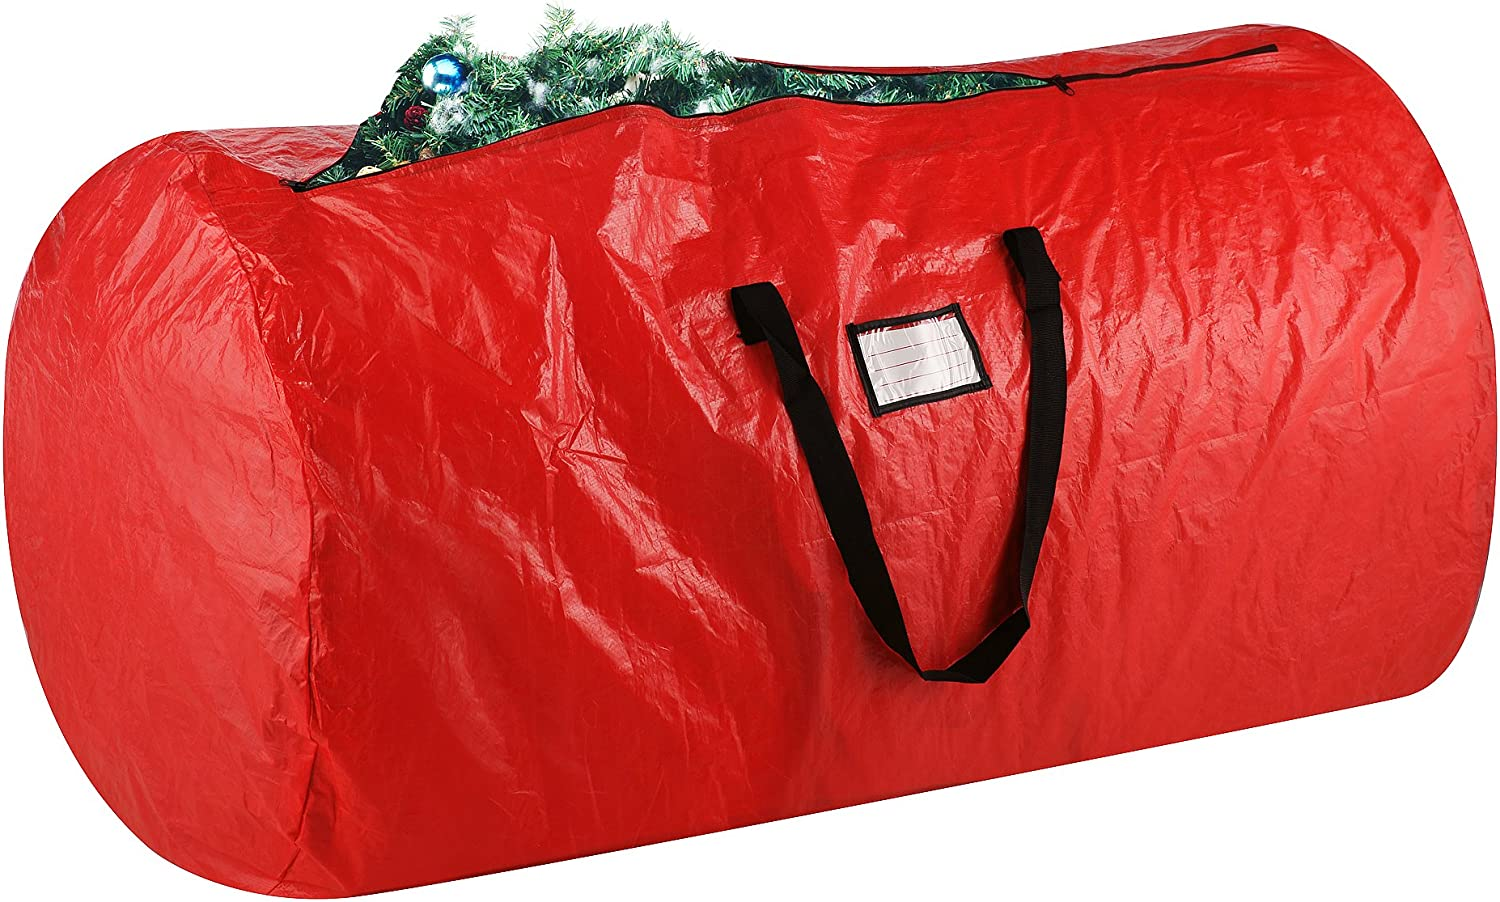 Elf Stor 83-DT5011 1012 Deluxe Red Holiday Christmas Storage Bag Large for 9 Foot Tree